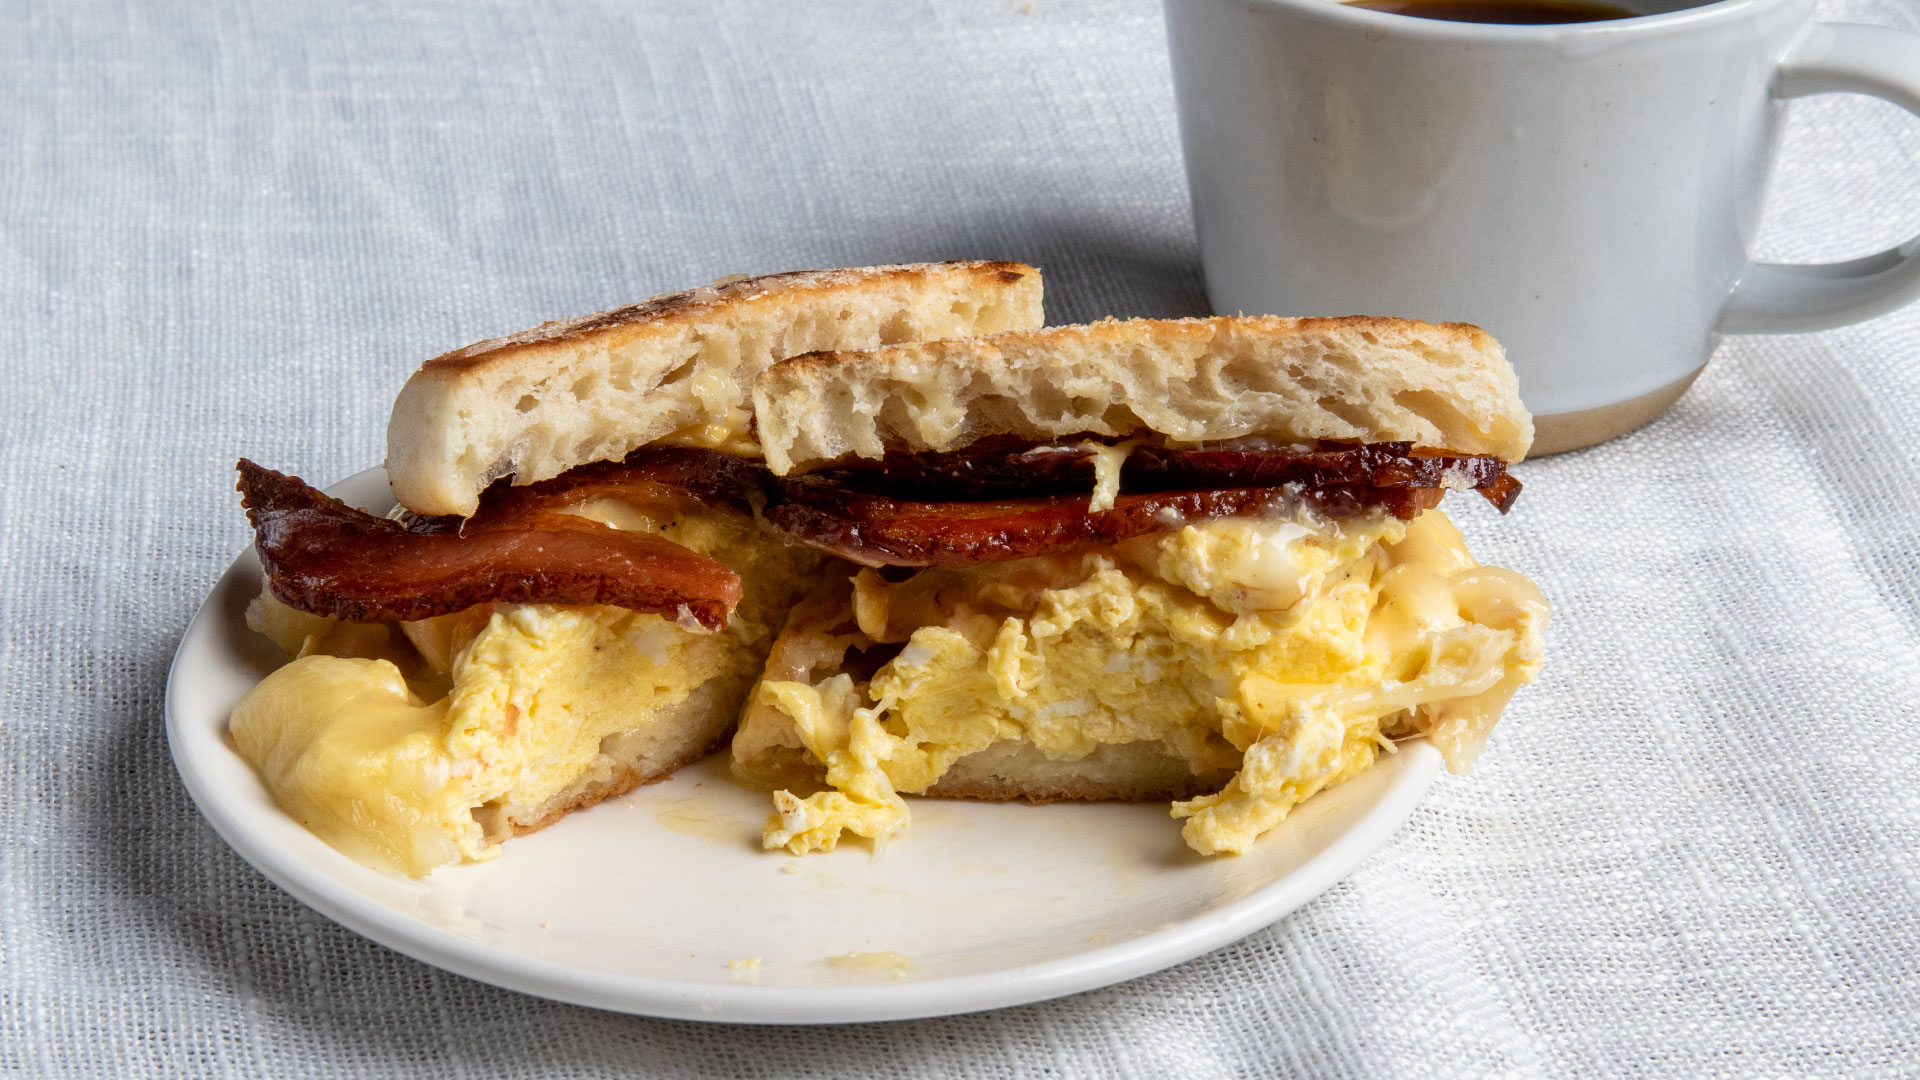 Murray's Ultimate Bacon, Egg & Cheese 3